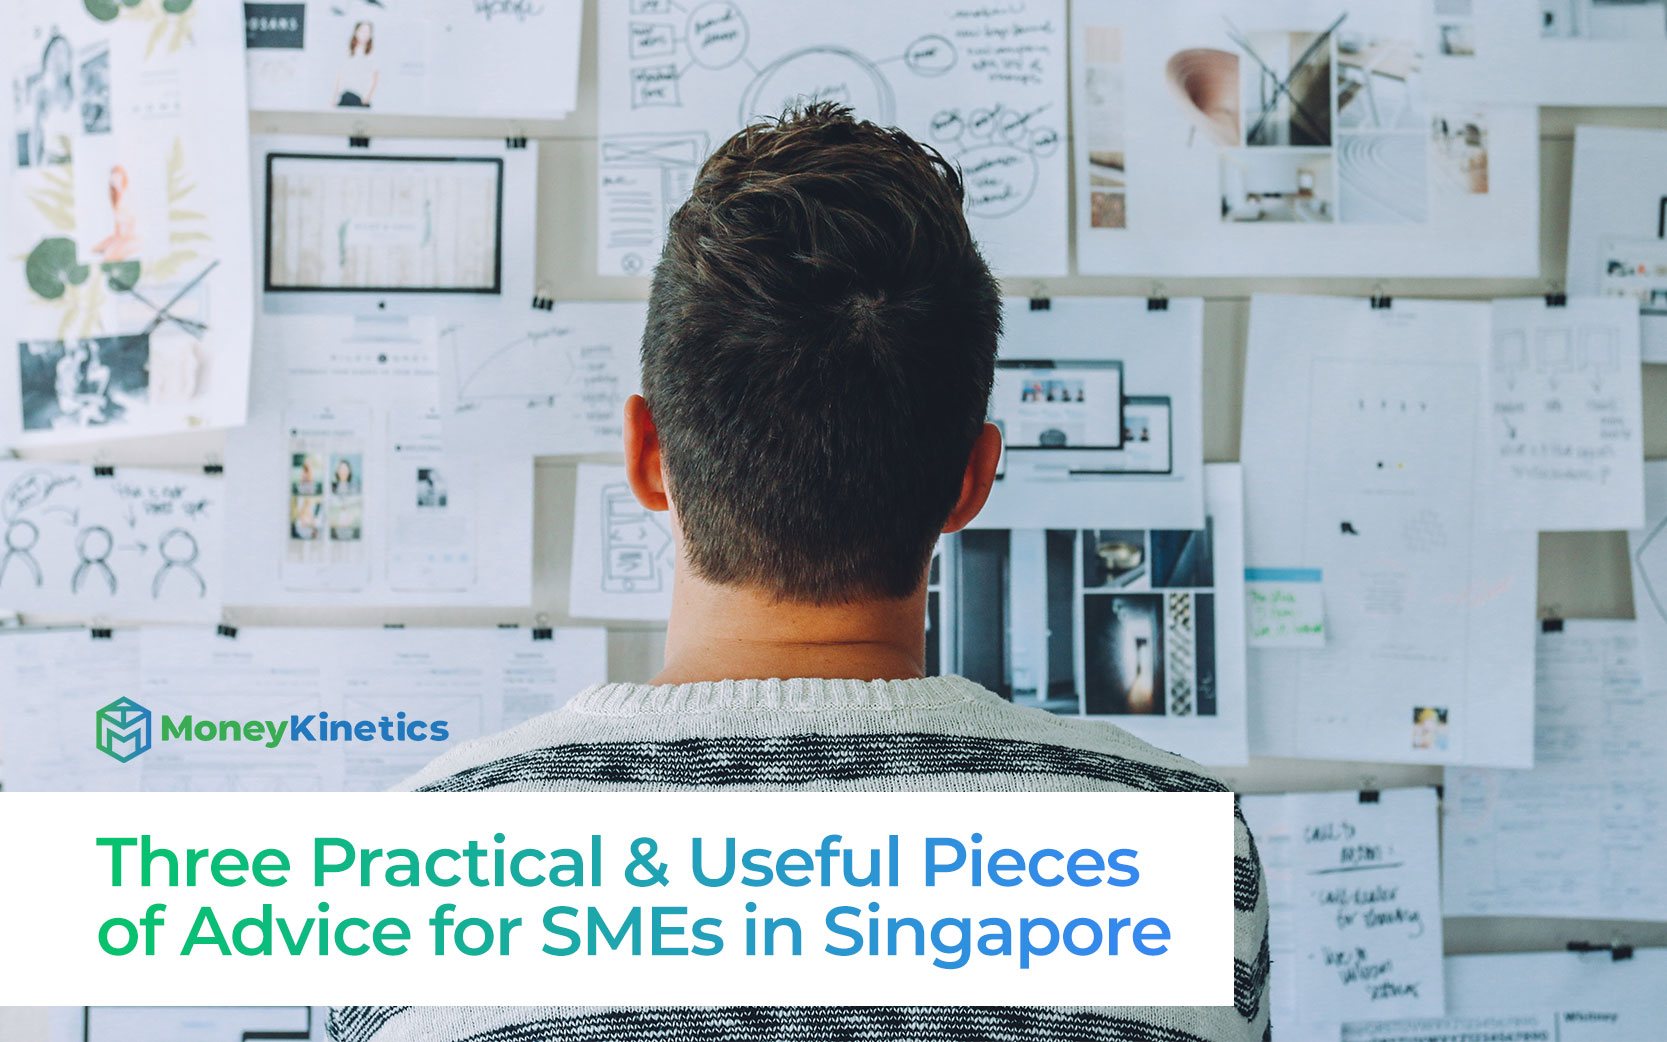 Three Practical & Useful Pieces of Advice for SMEs in Singapore